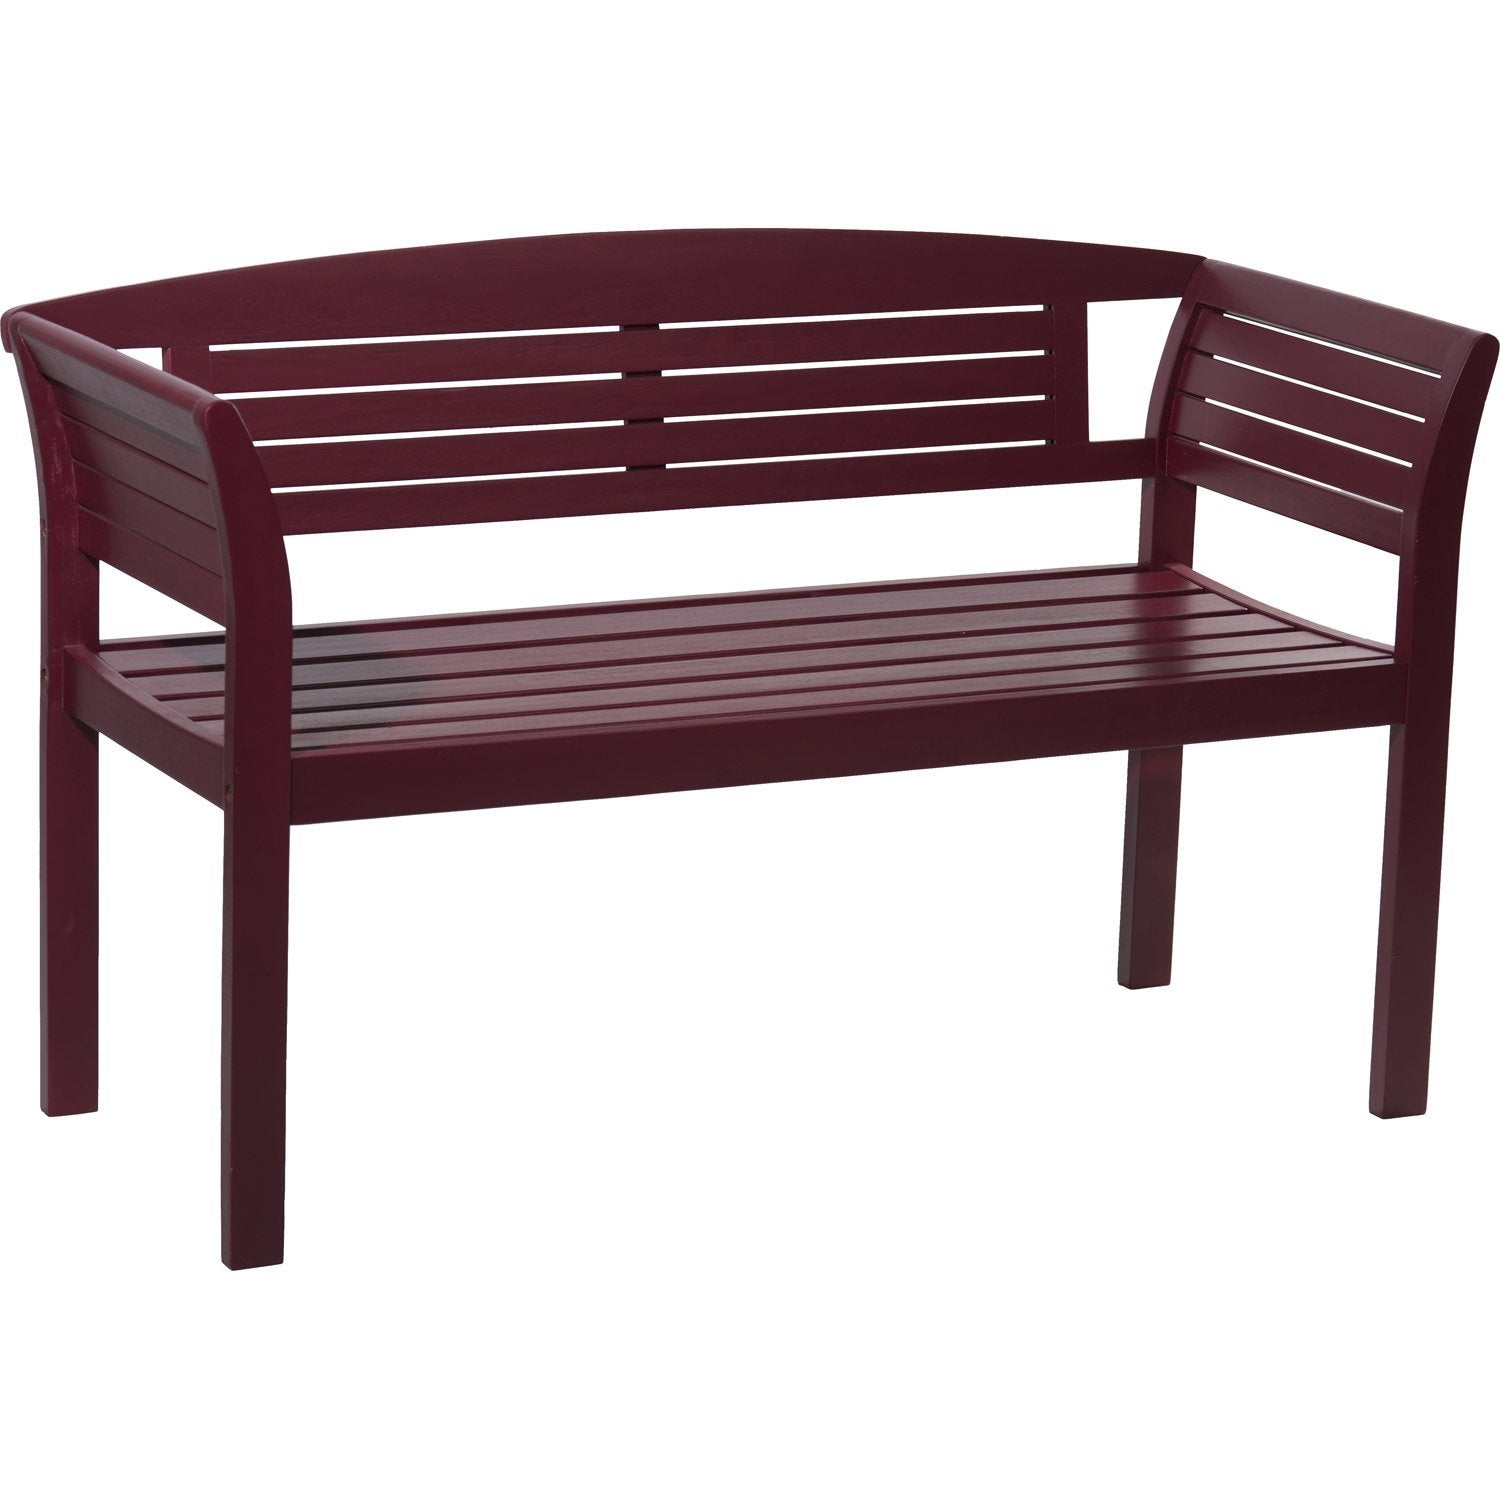 Banc teck leroy merlin maison design for Meuble jardin leroy merlin